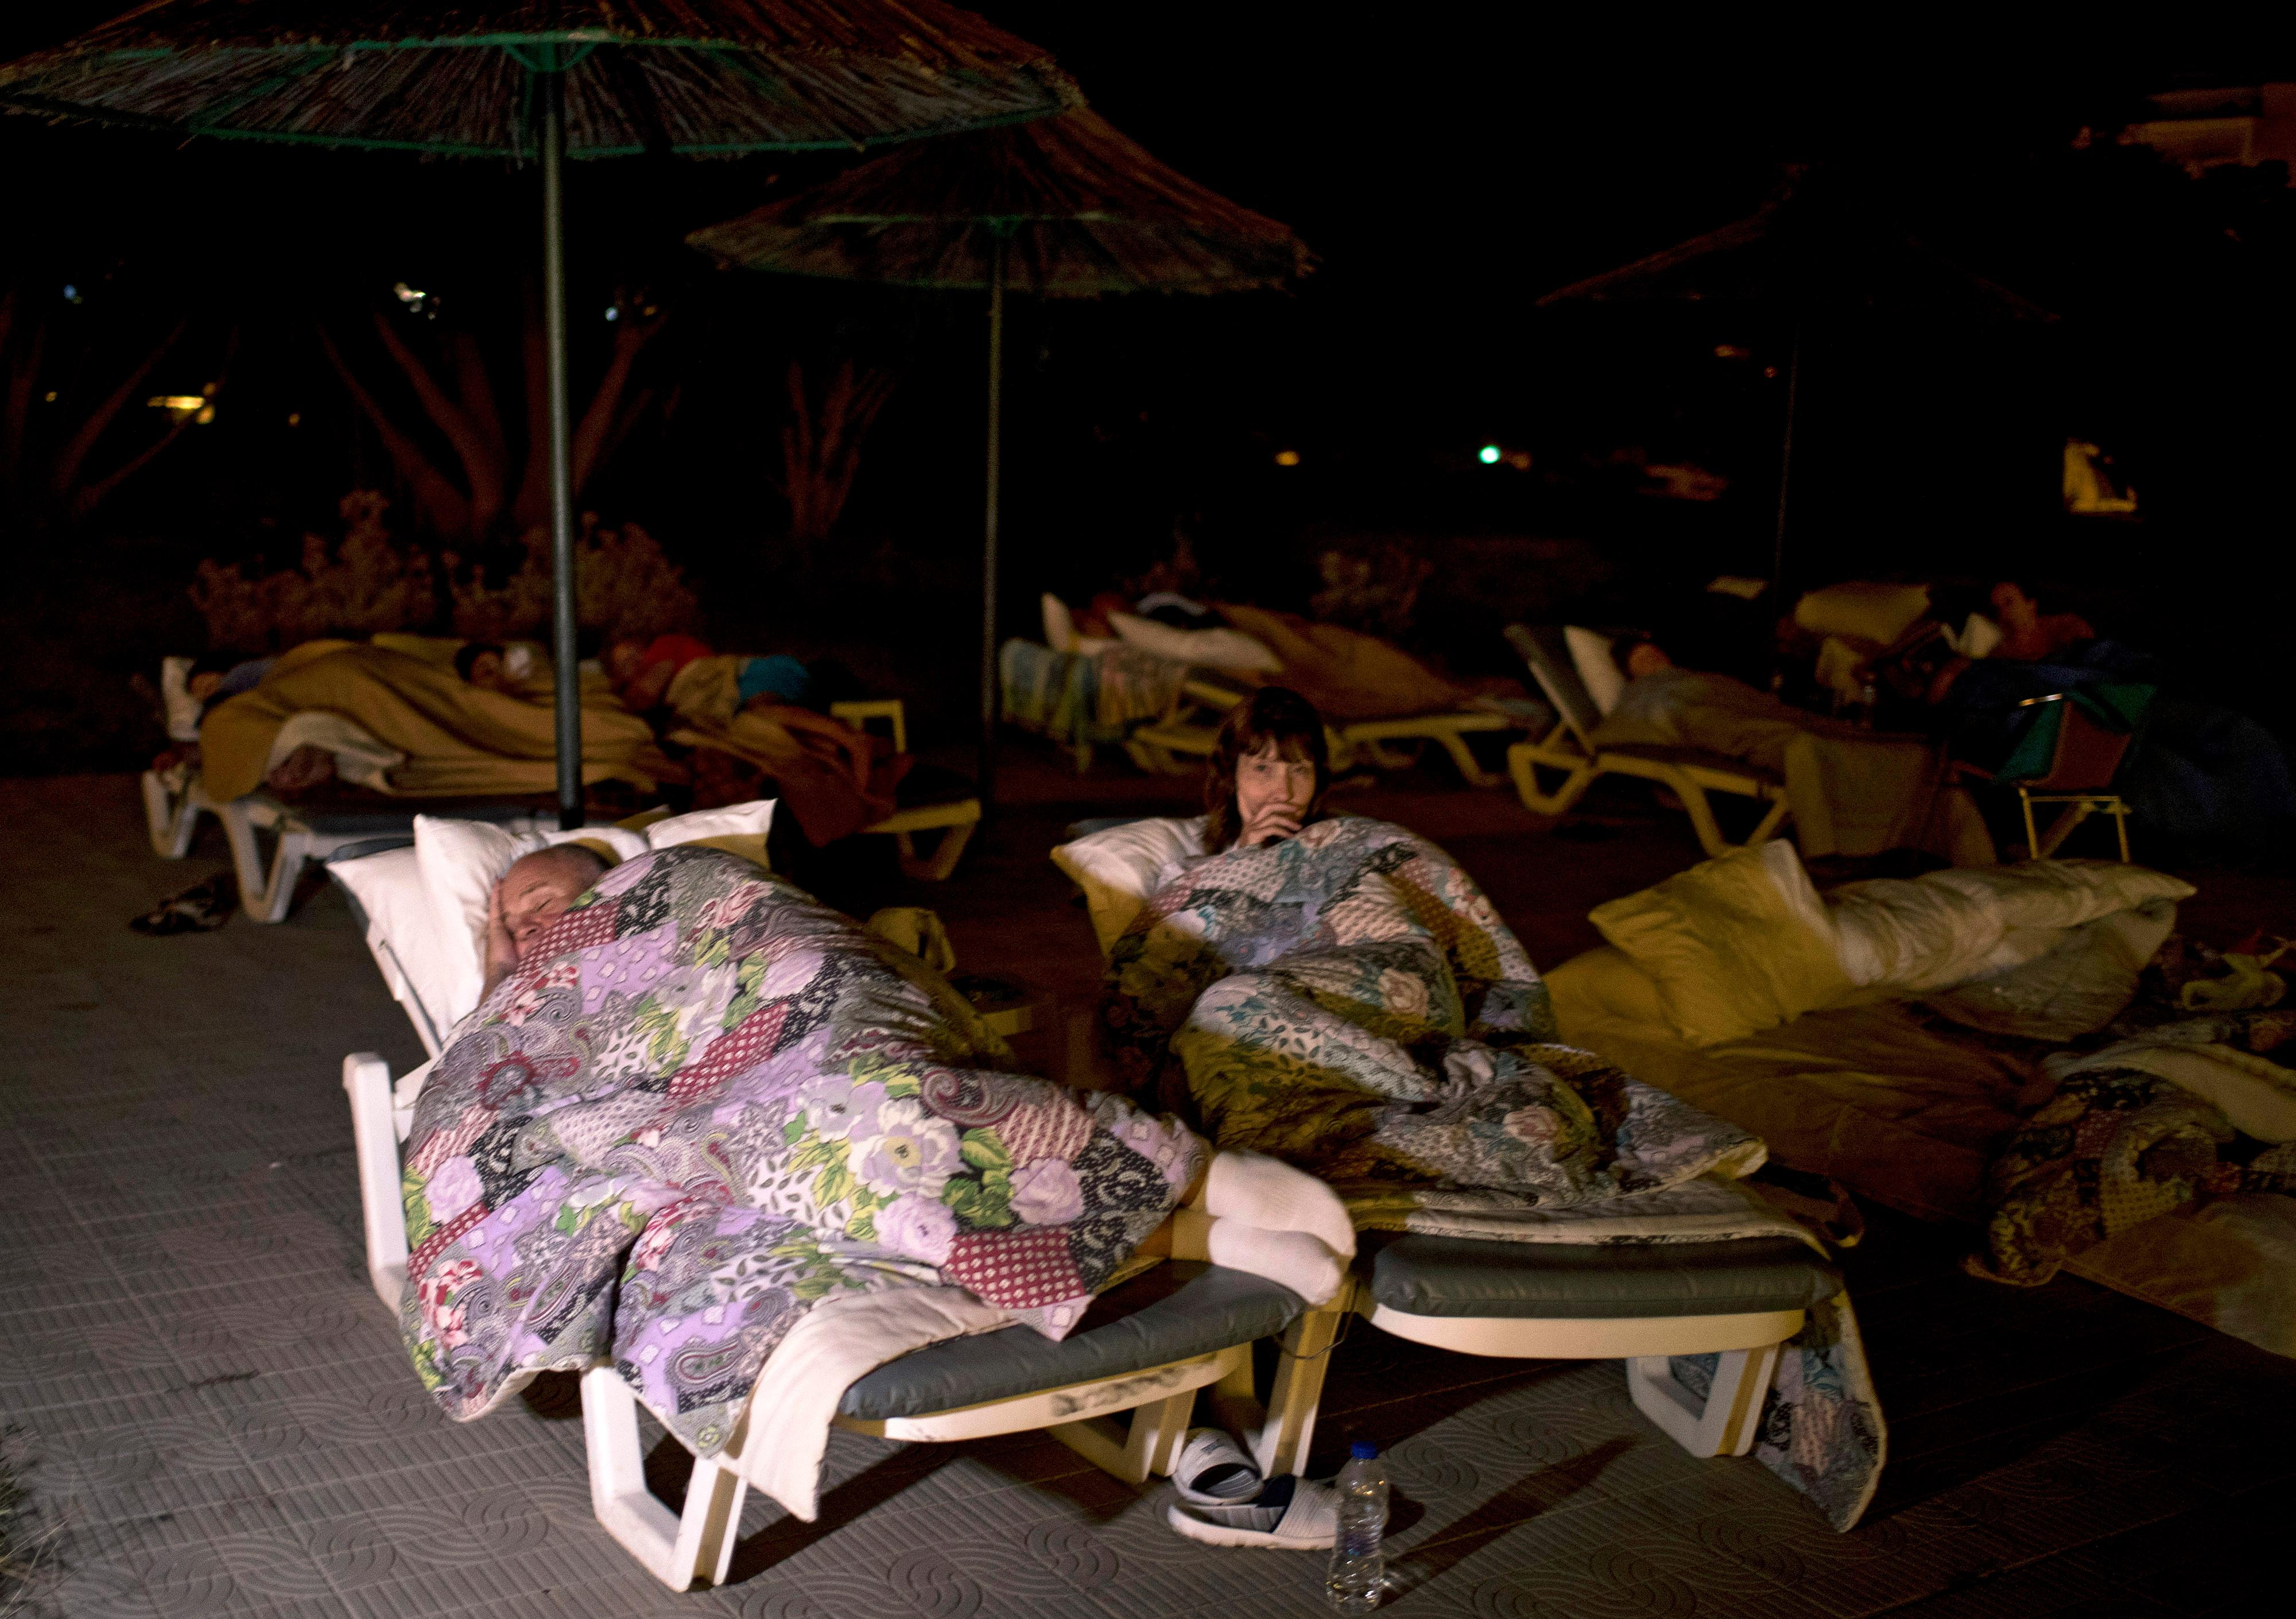 residents, tourists in greece sleep outdoors after quake | kboi